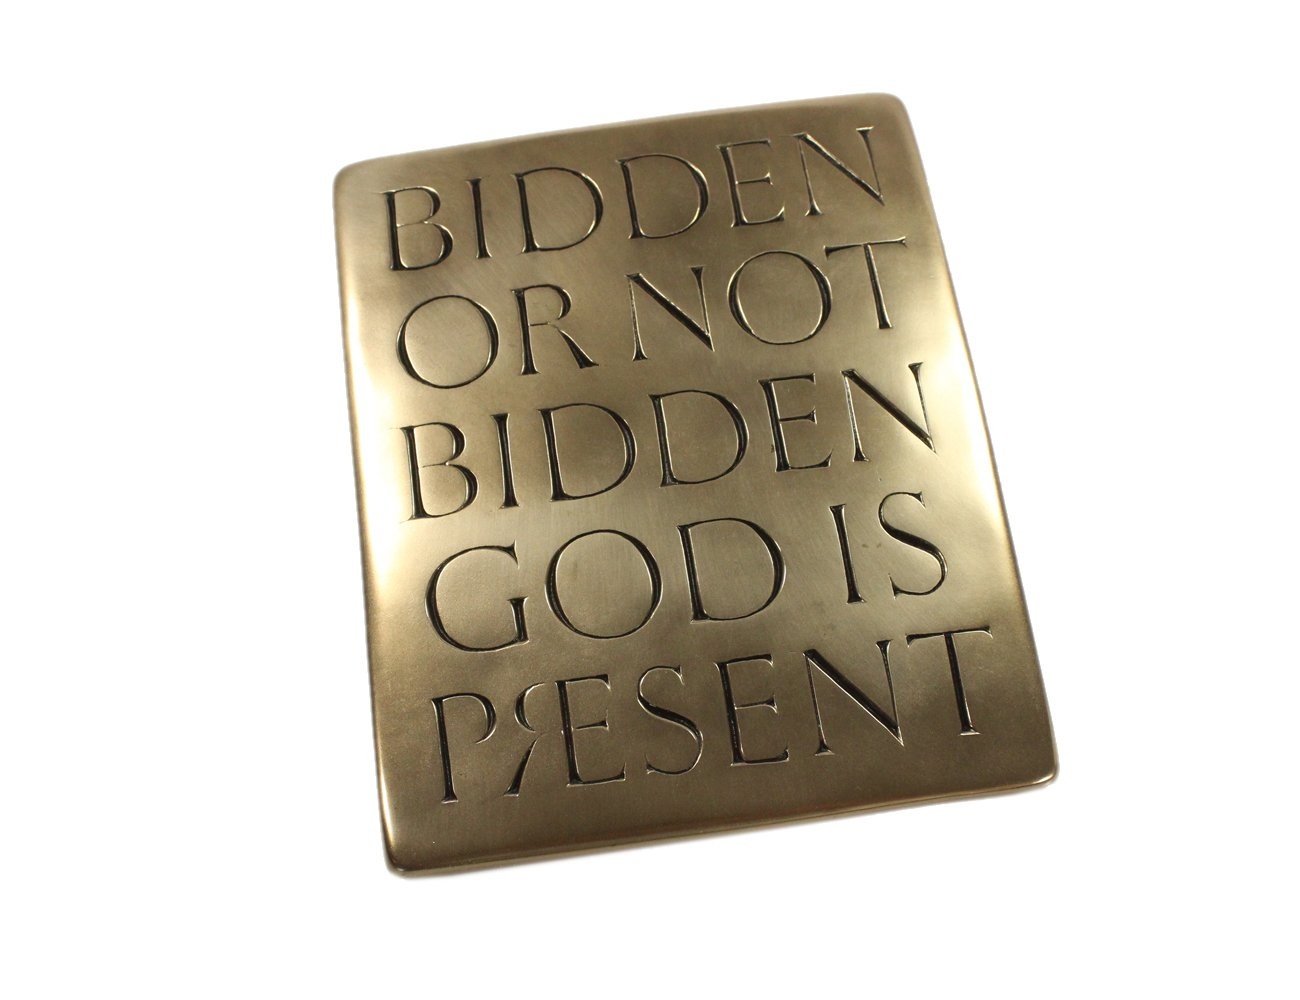 Wild Goose Studio Bidden or Not Bidden God is Present Irish Plaque Resin Casting Bronze Coated 8 1/4 Inches Tall by 6 3/4 Inches Wide Ready To Hang Made in Ireland